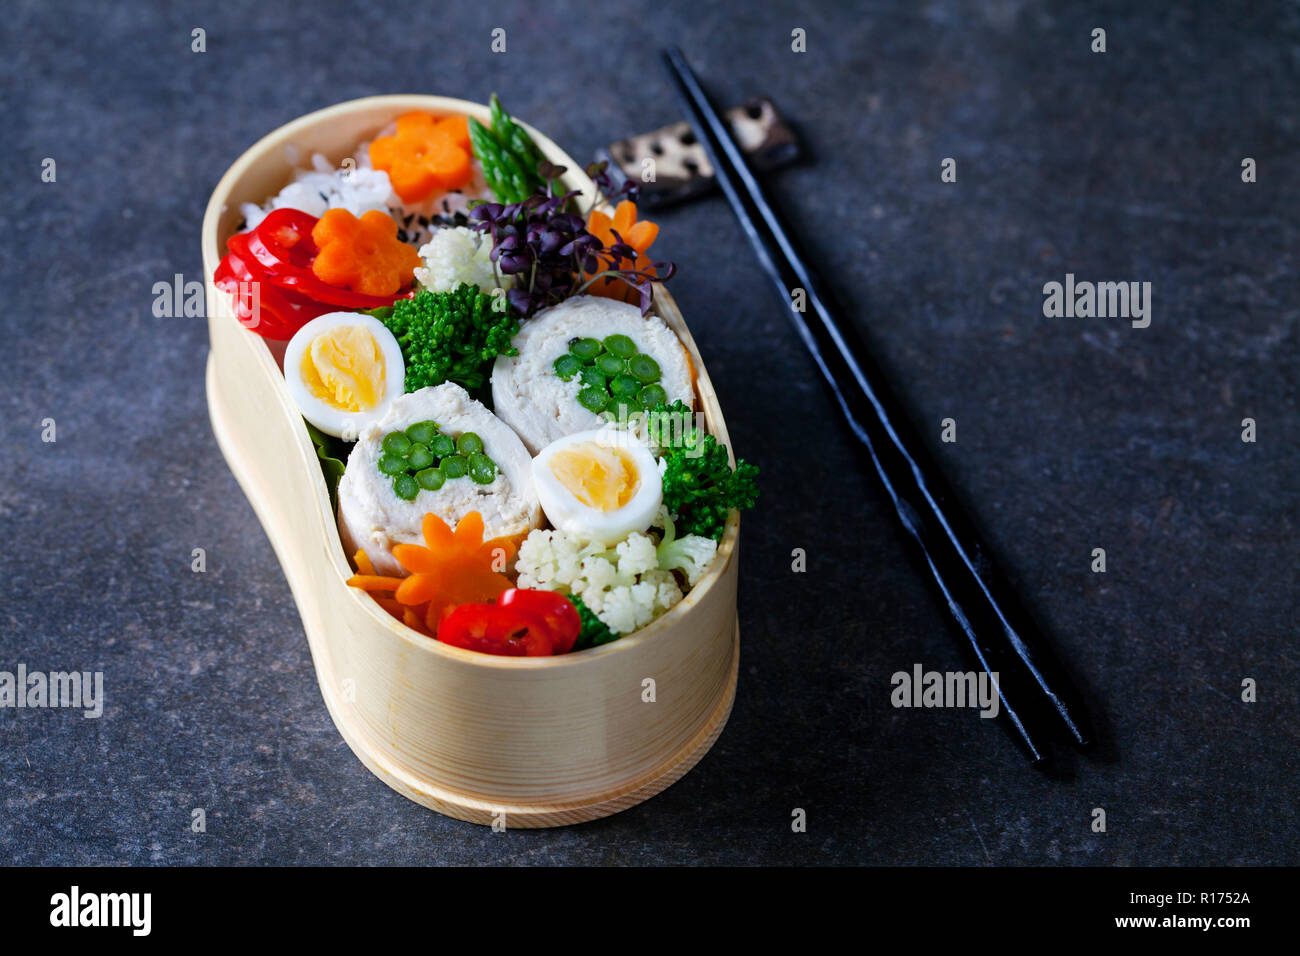 Japanese bento box with chicken stuffed with asparagus, rice, vegetables and quail eggs - Stock Image